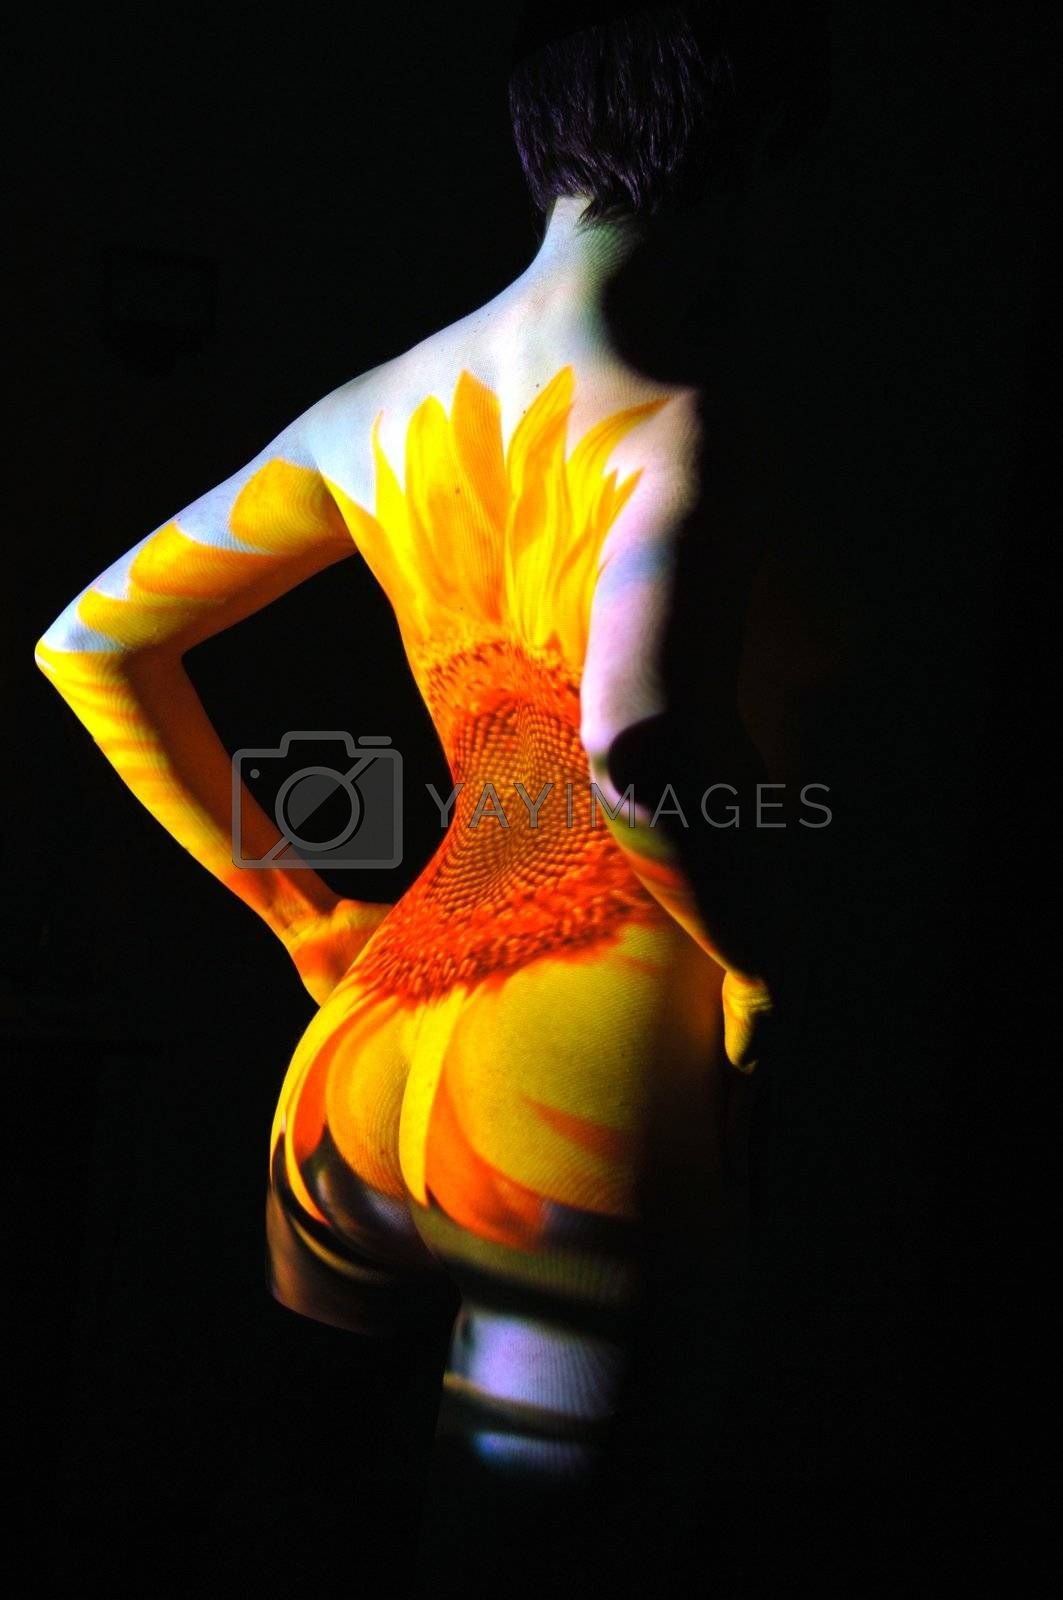 Projection of Leafs Texture on Woman Body